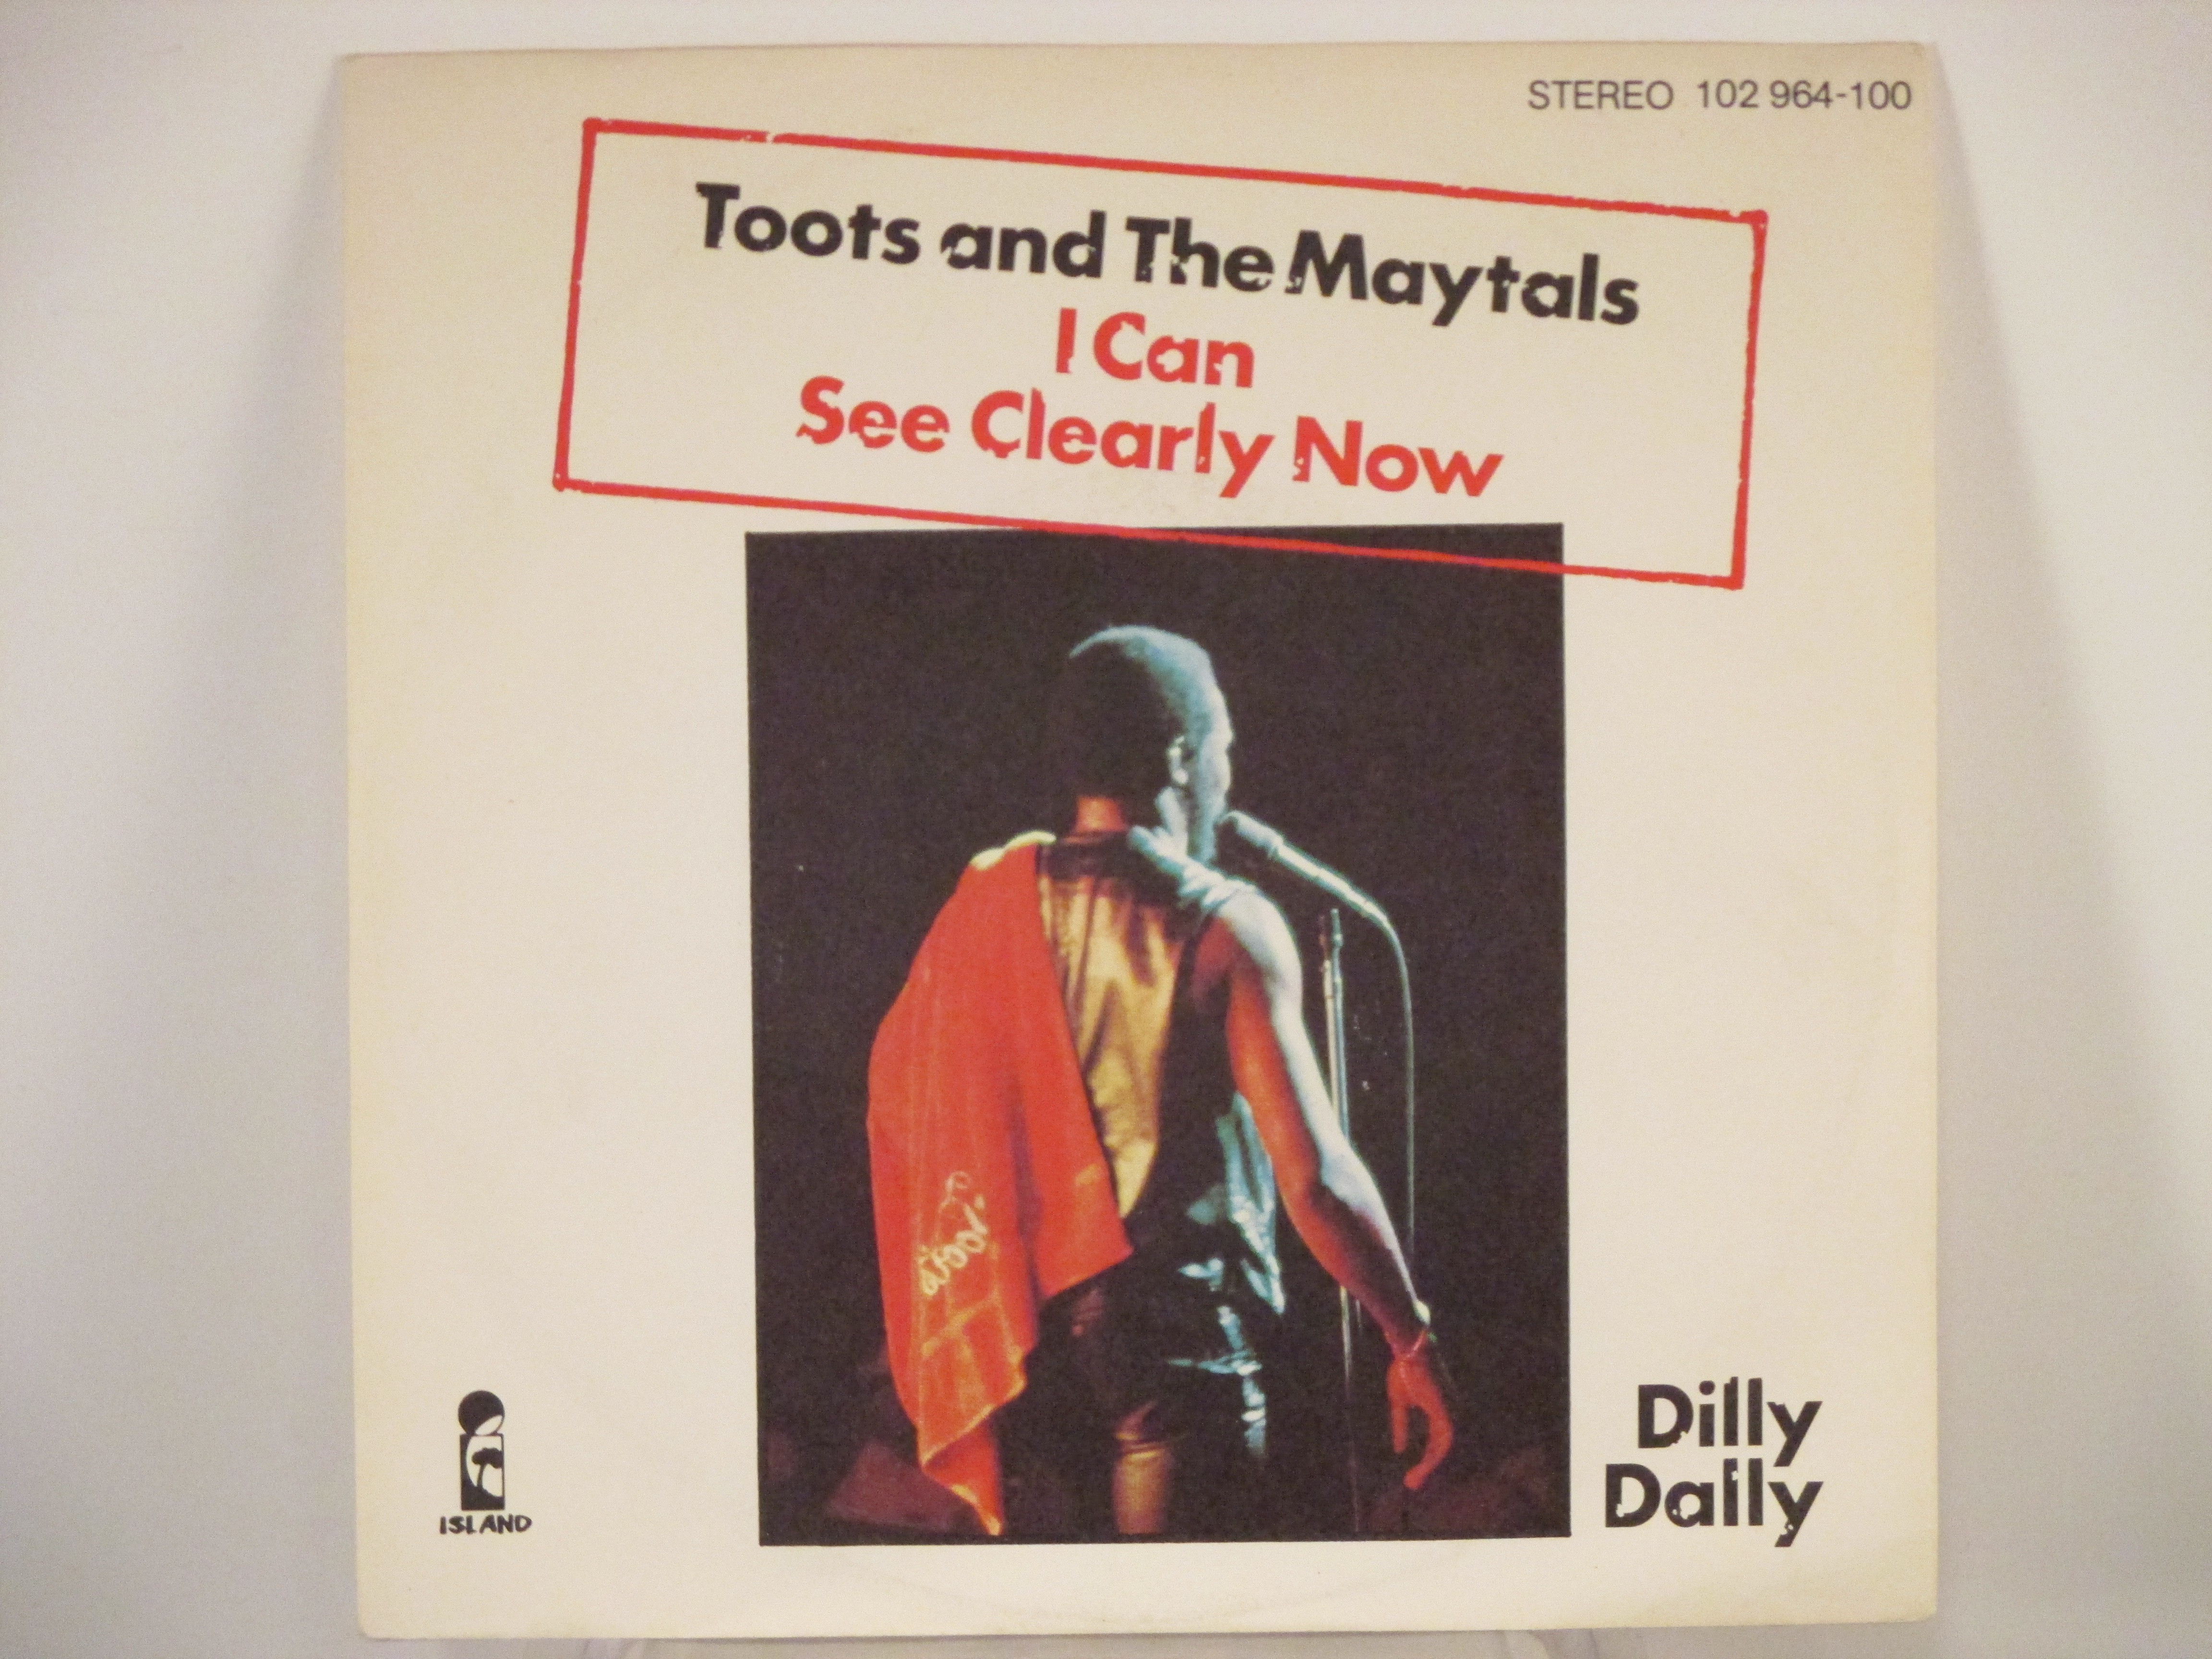 TOOTS & MAYTALS : I can see clearly now / Dilly dally